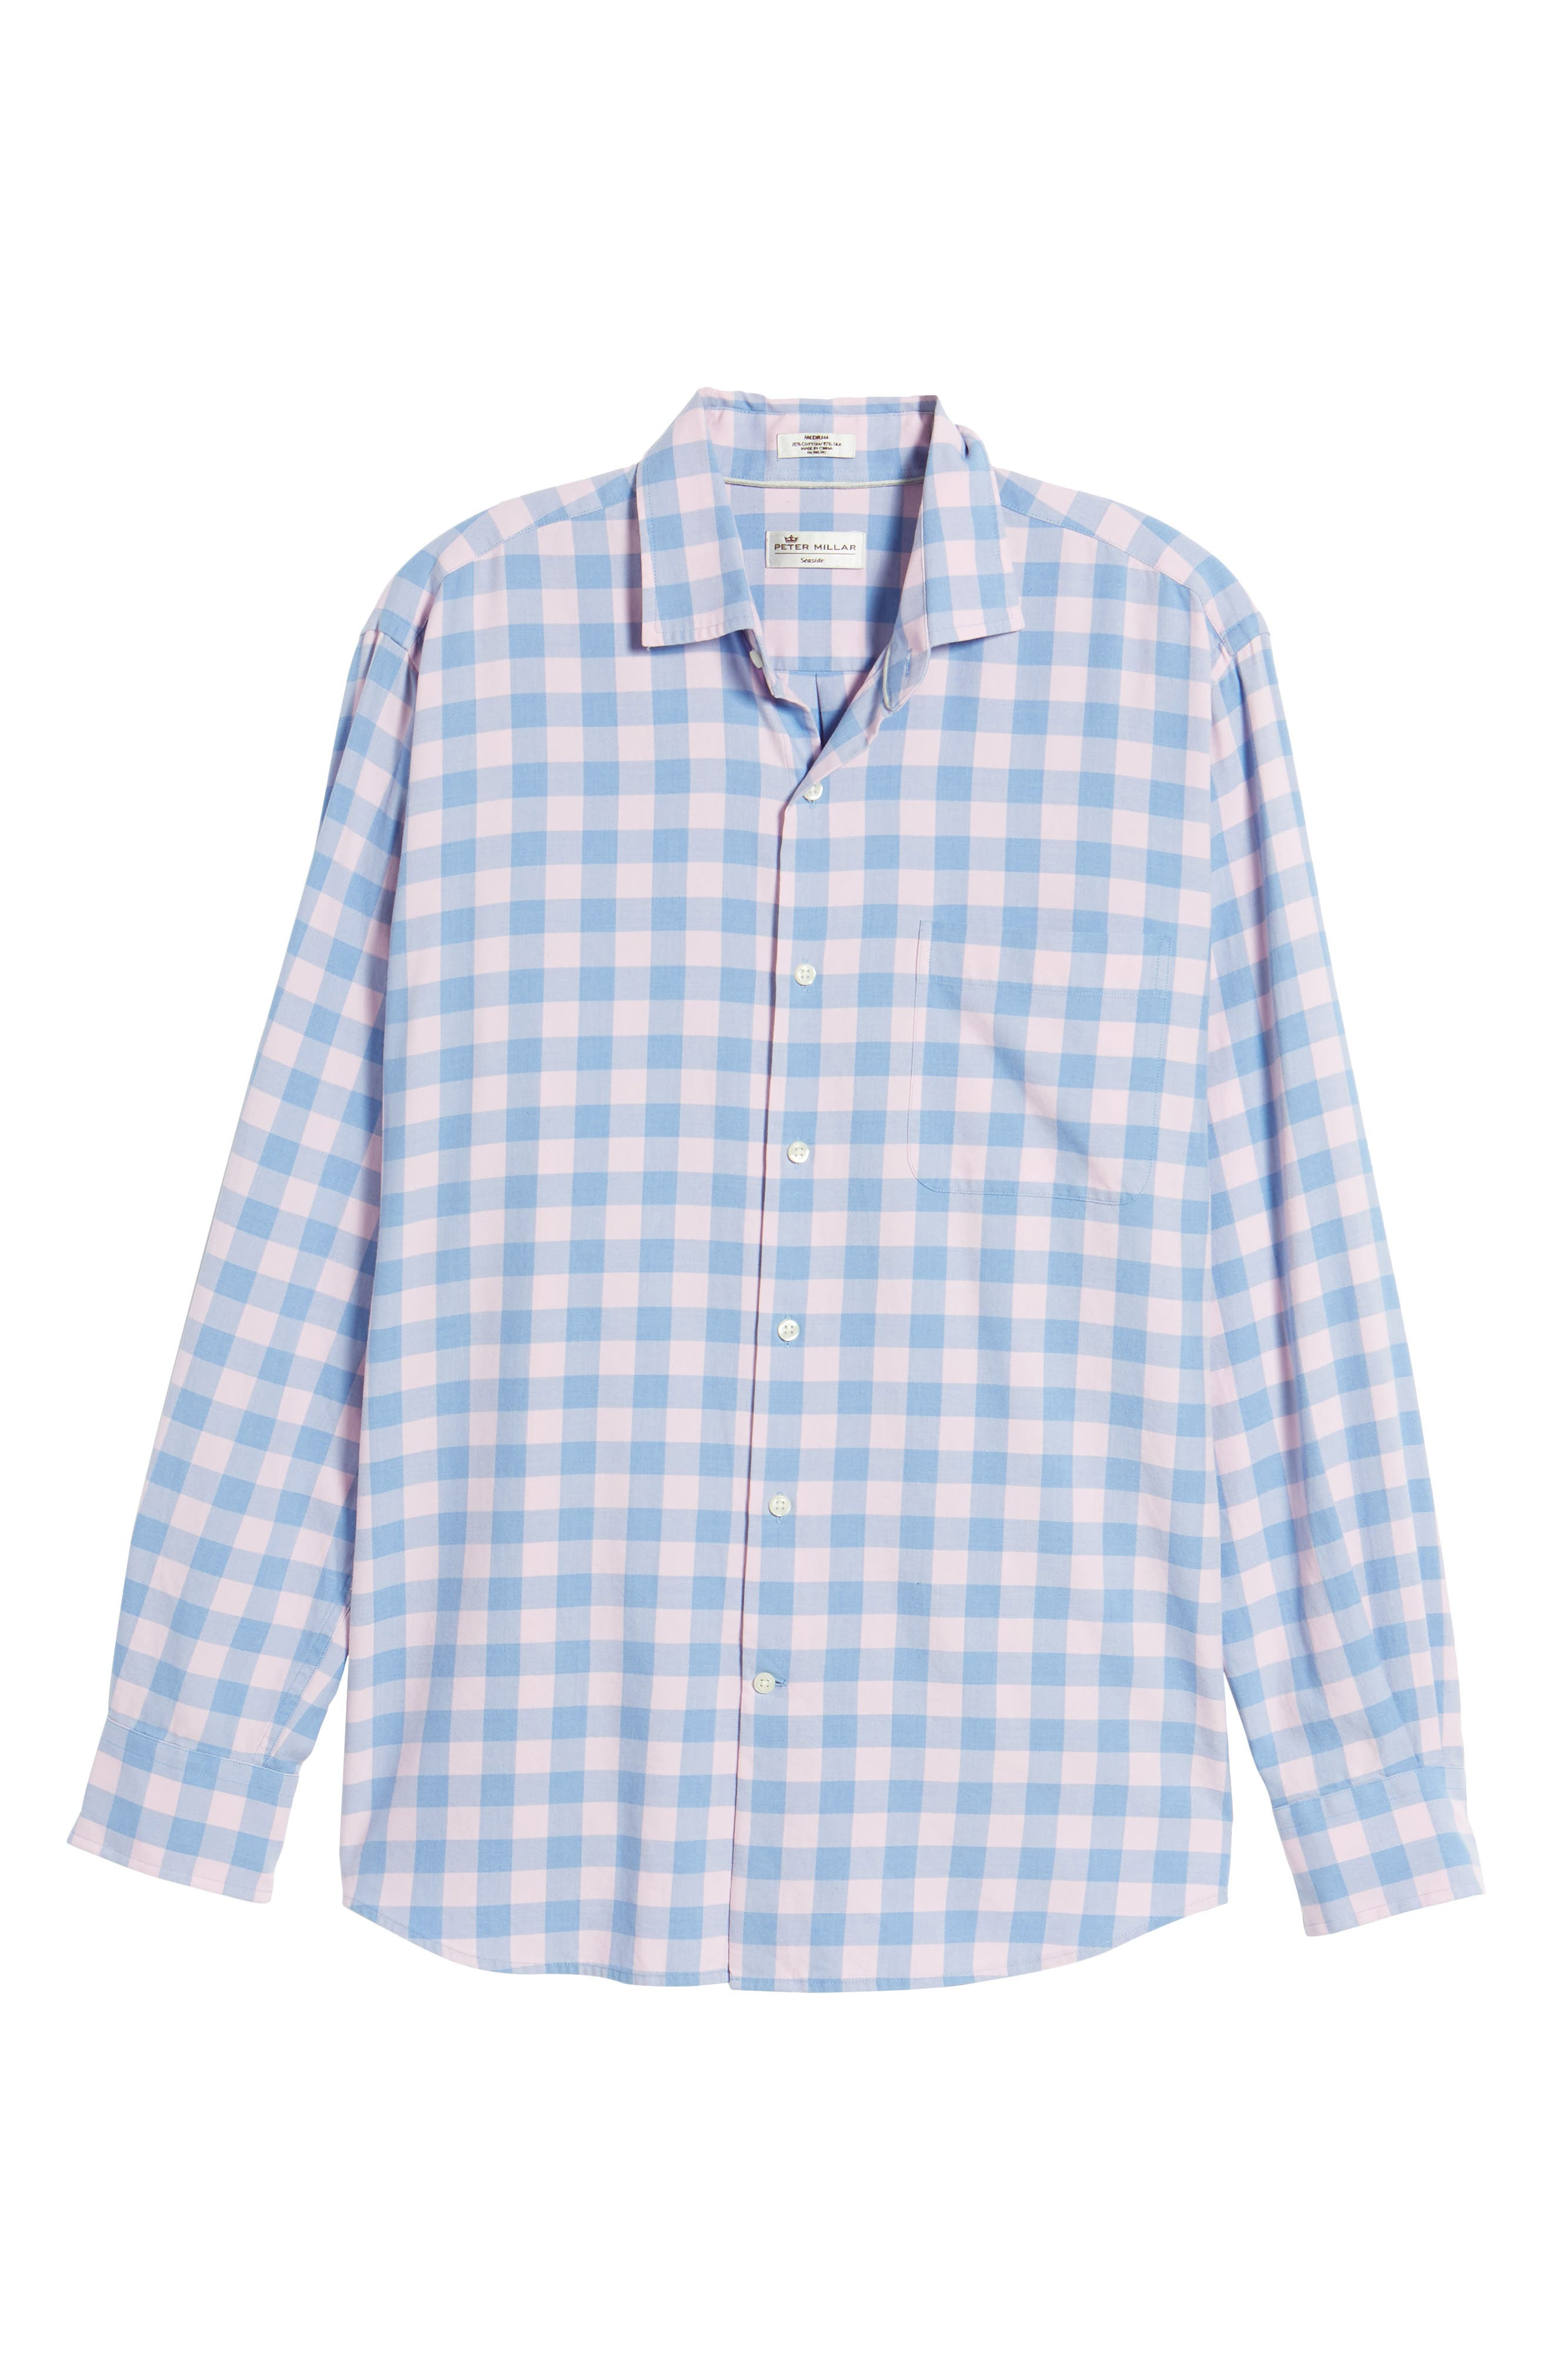 Seaglass Gingham Check Sport Shirt,                             Alternate thumbnail 6, color,                             407